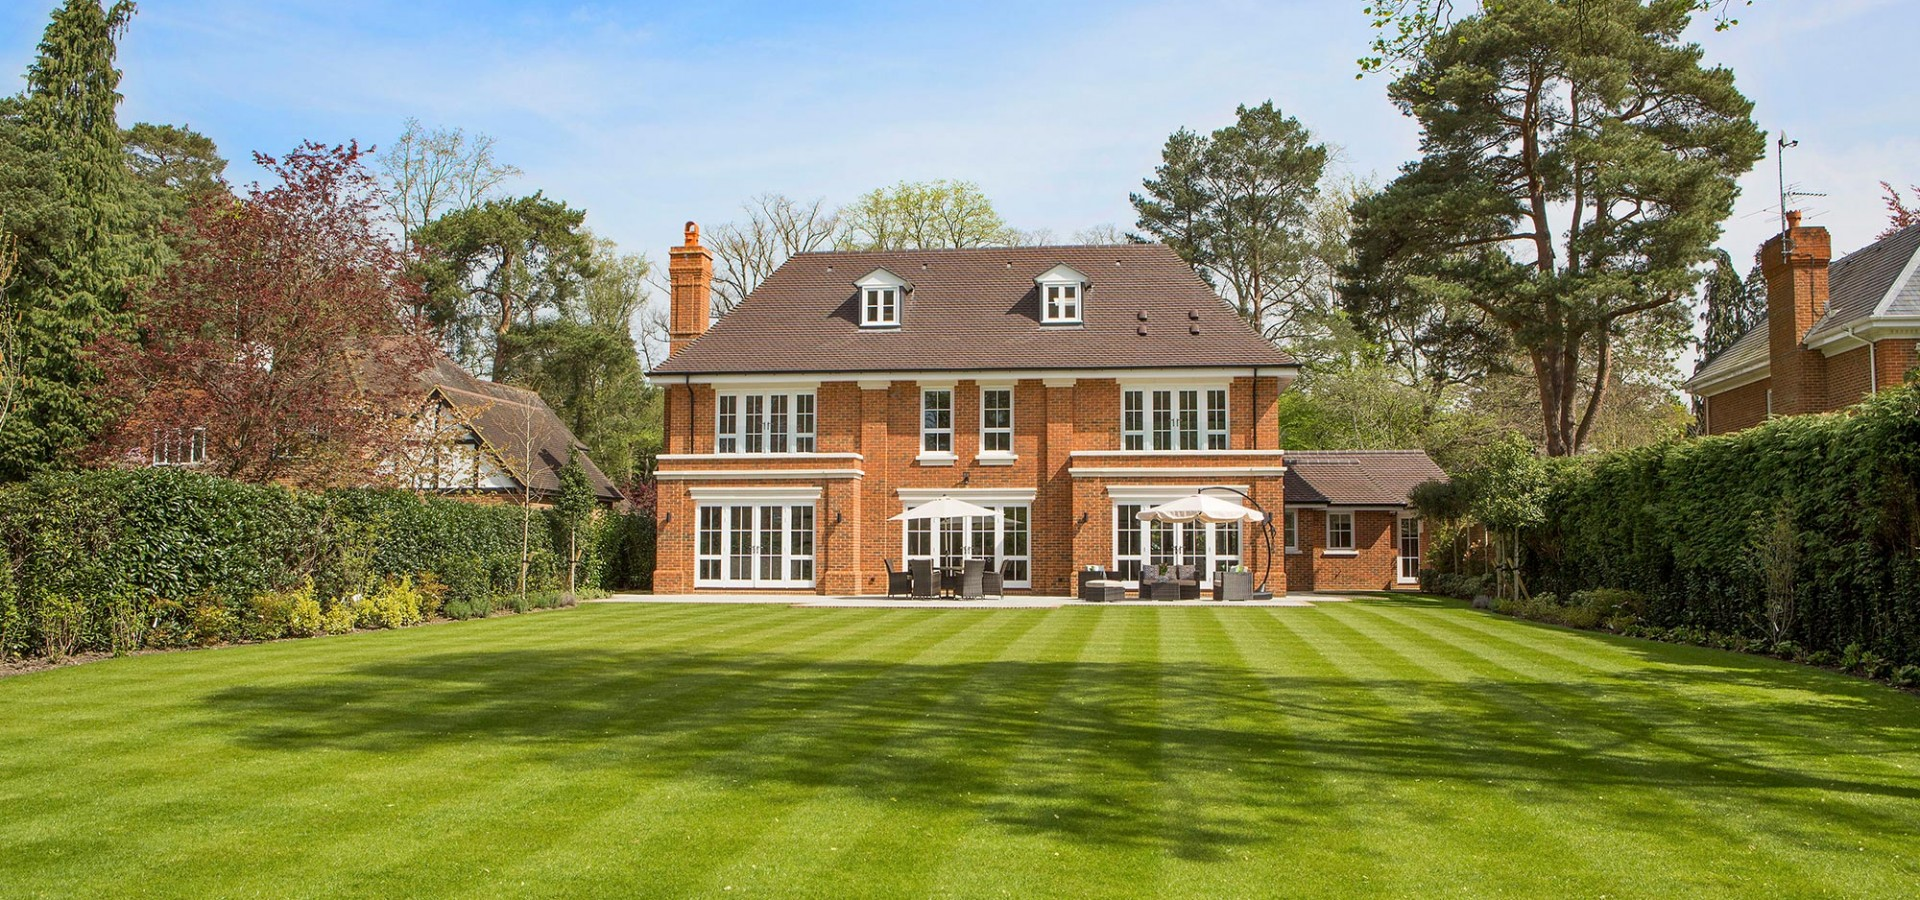 6 bed luxury property wentworth estate virginia water octagon